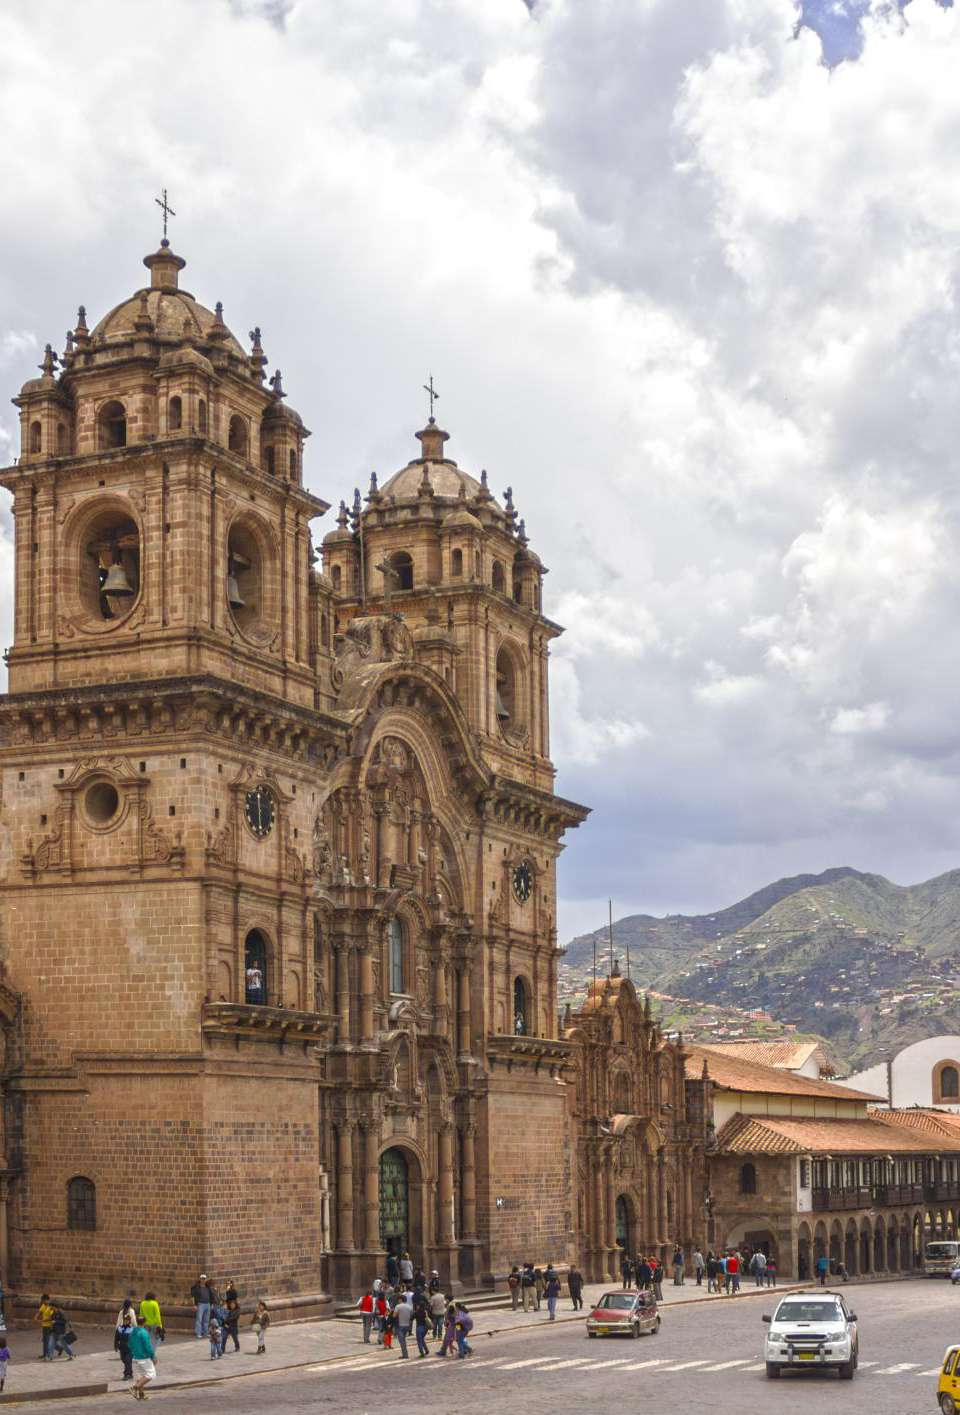 Church of the Society of Jesus, view from the Plaza de Armas, Cuzco.